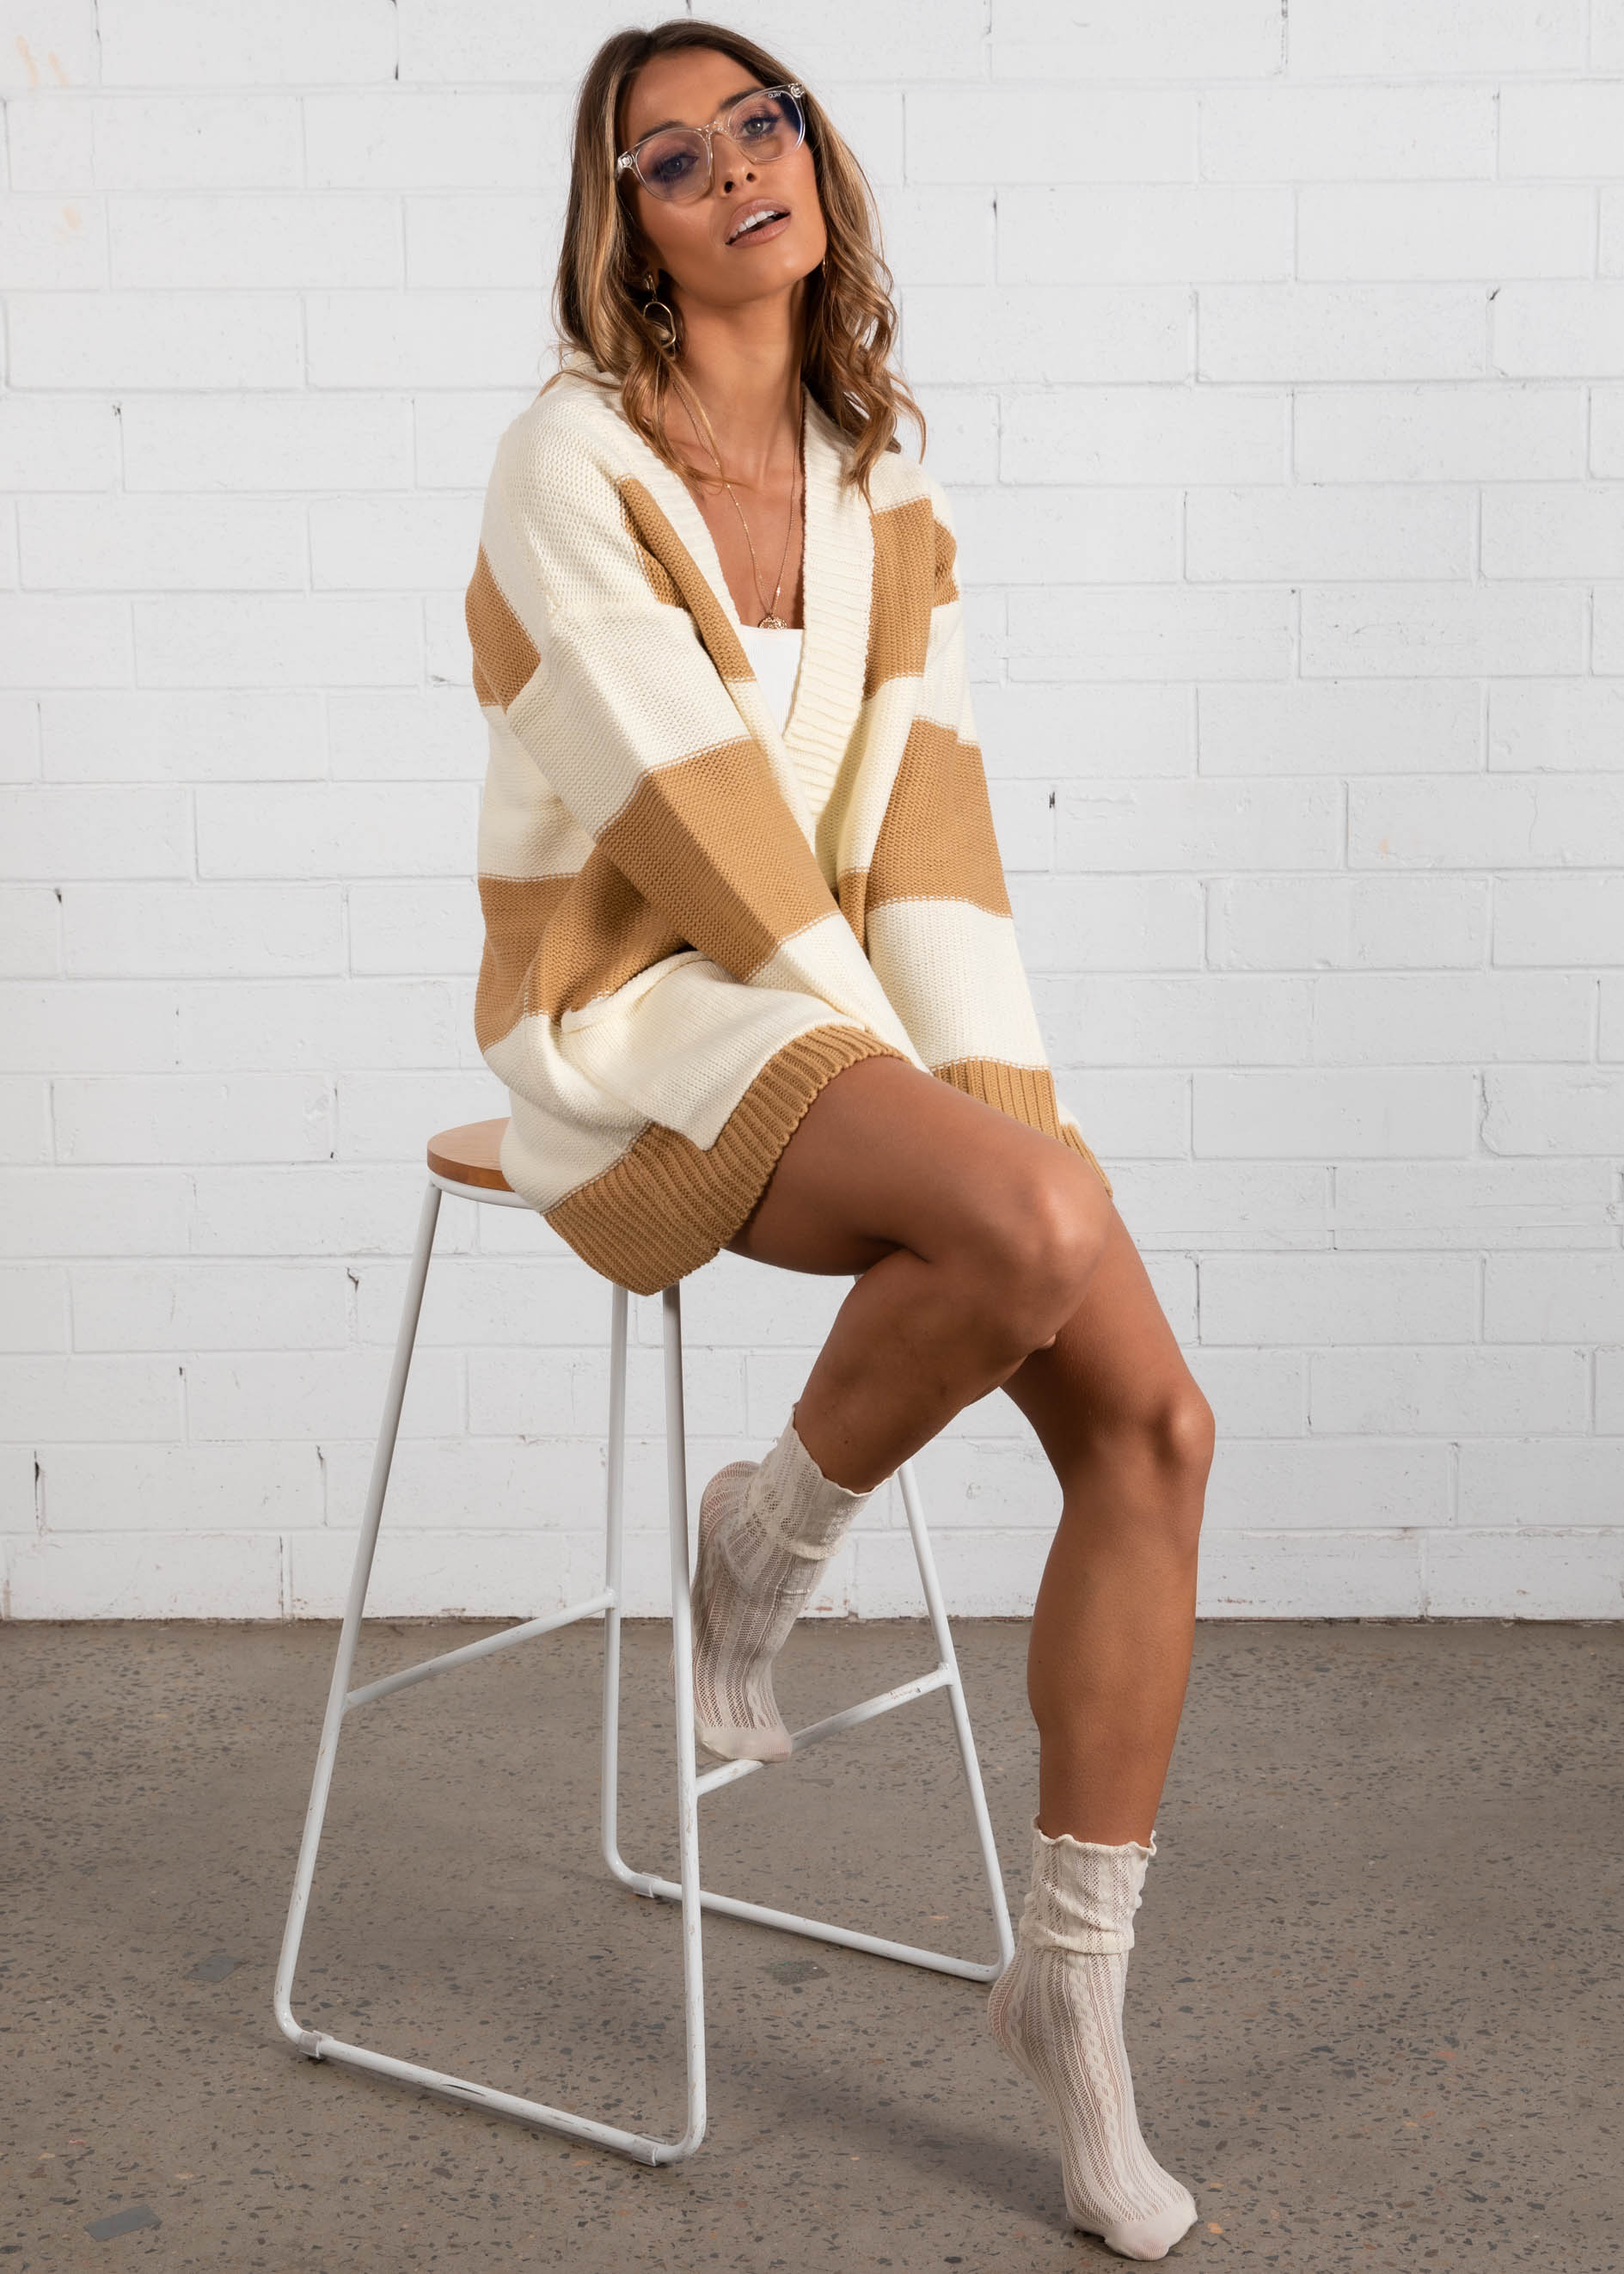 Monaco Buttoned Cardi - Tan/Cream